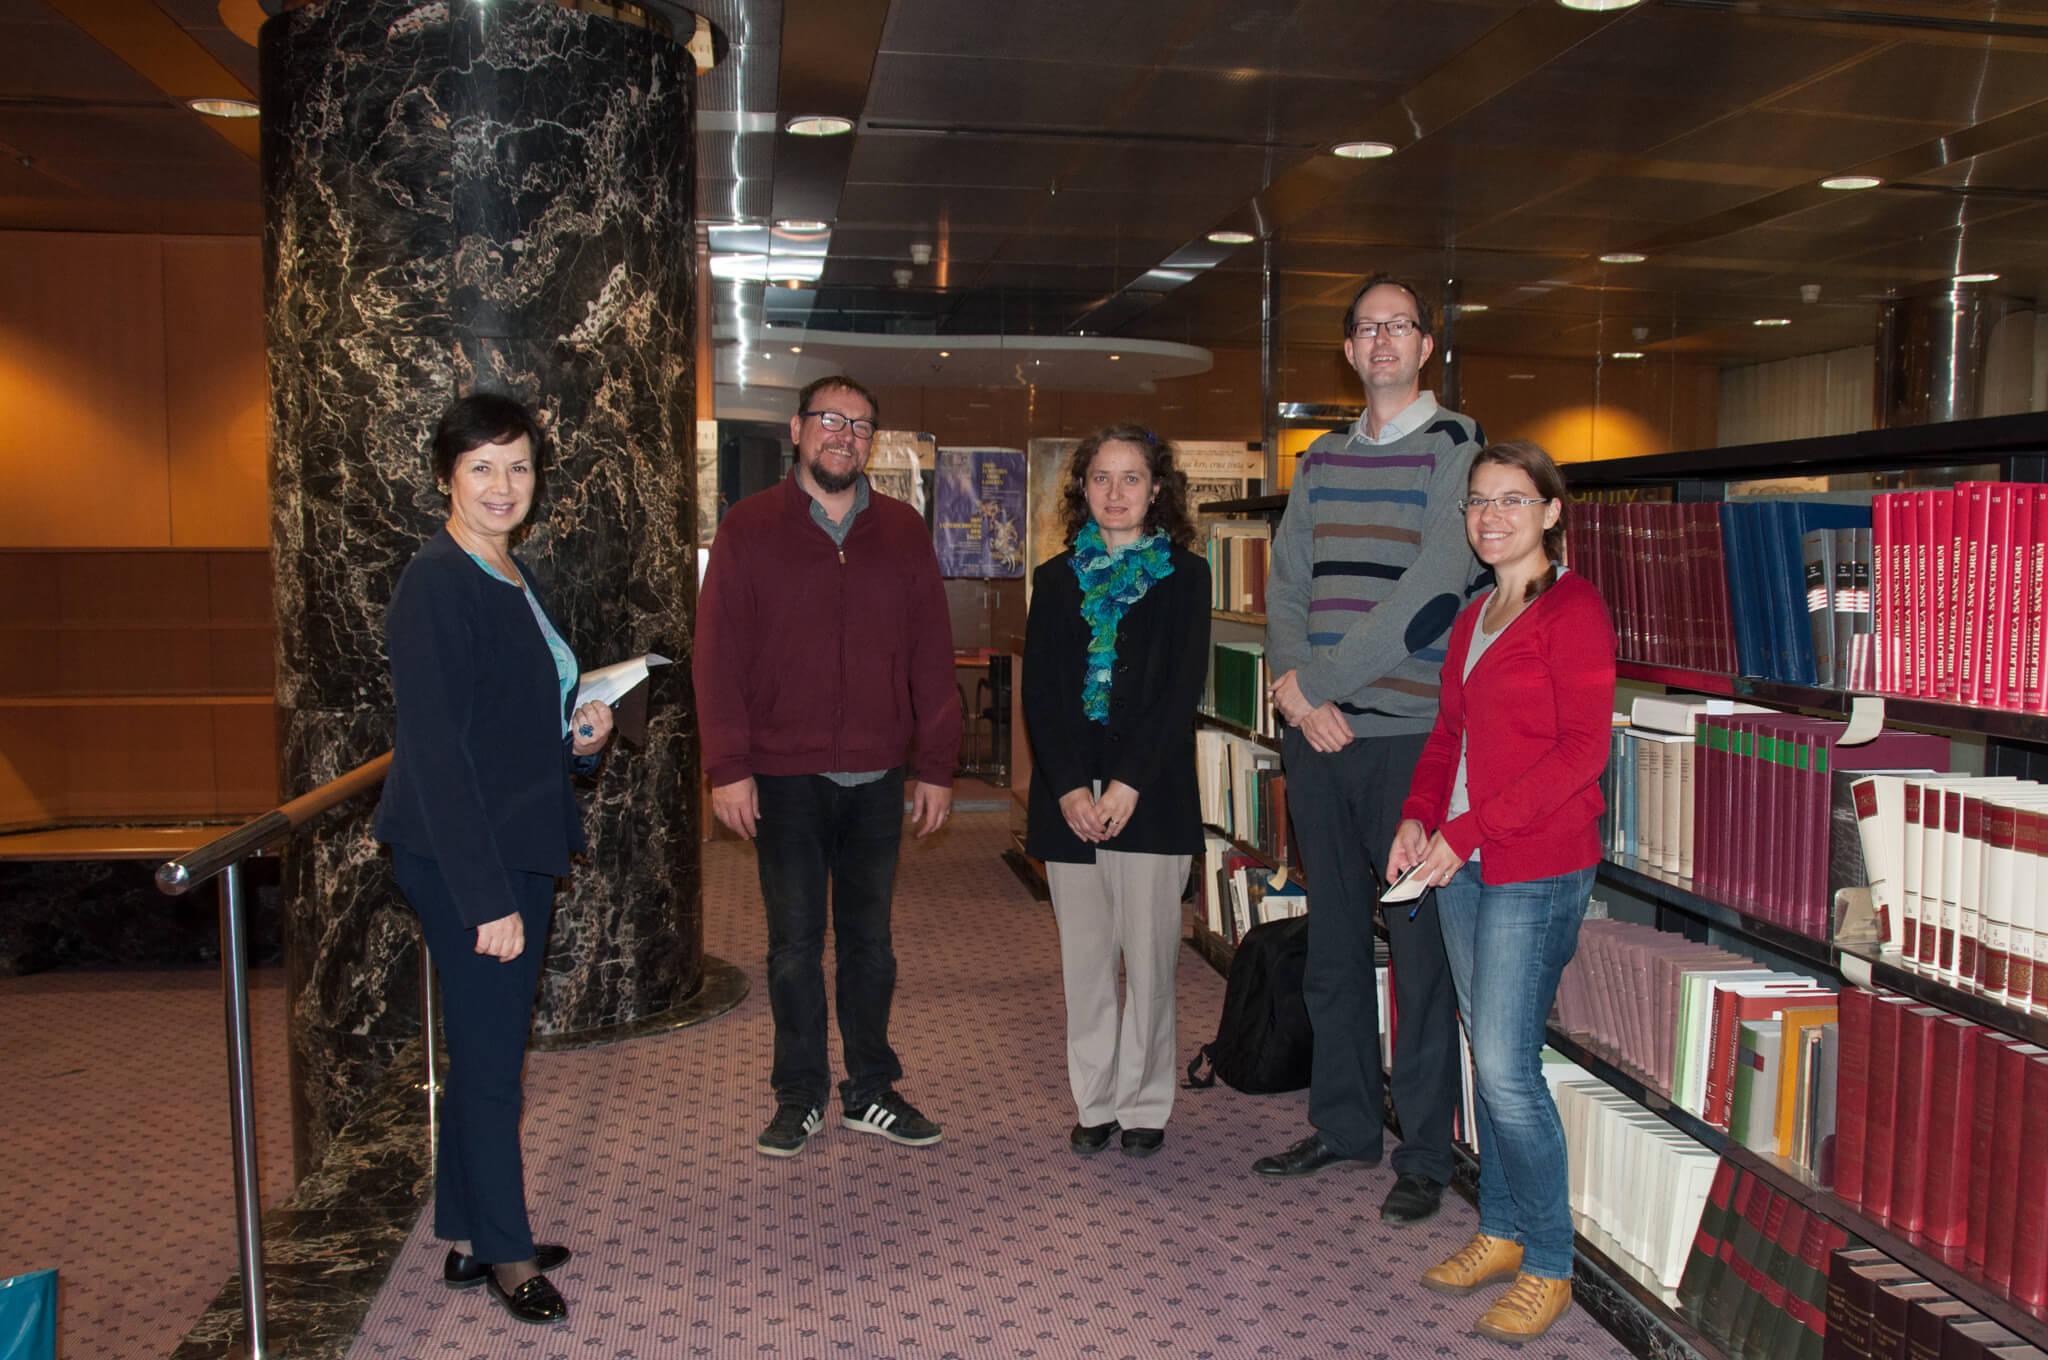 Representatives of the National Library of the Czech Republic at the NSK Manuscripts and Old Books Collection during their visit to the National and University Library in Zagreb (NSK).